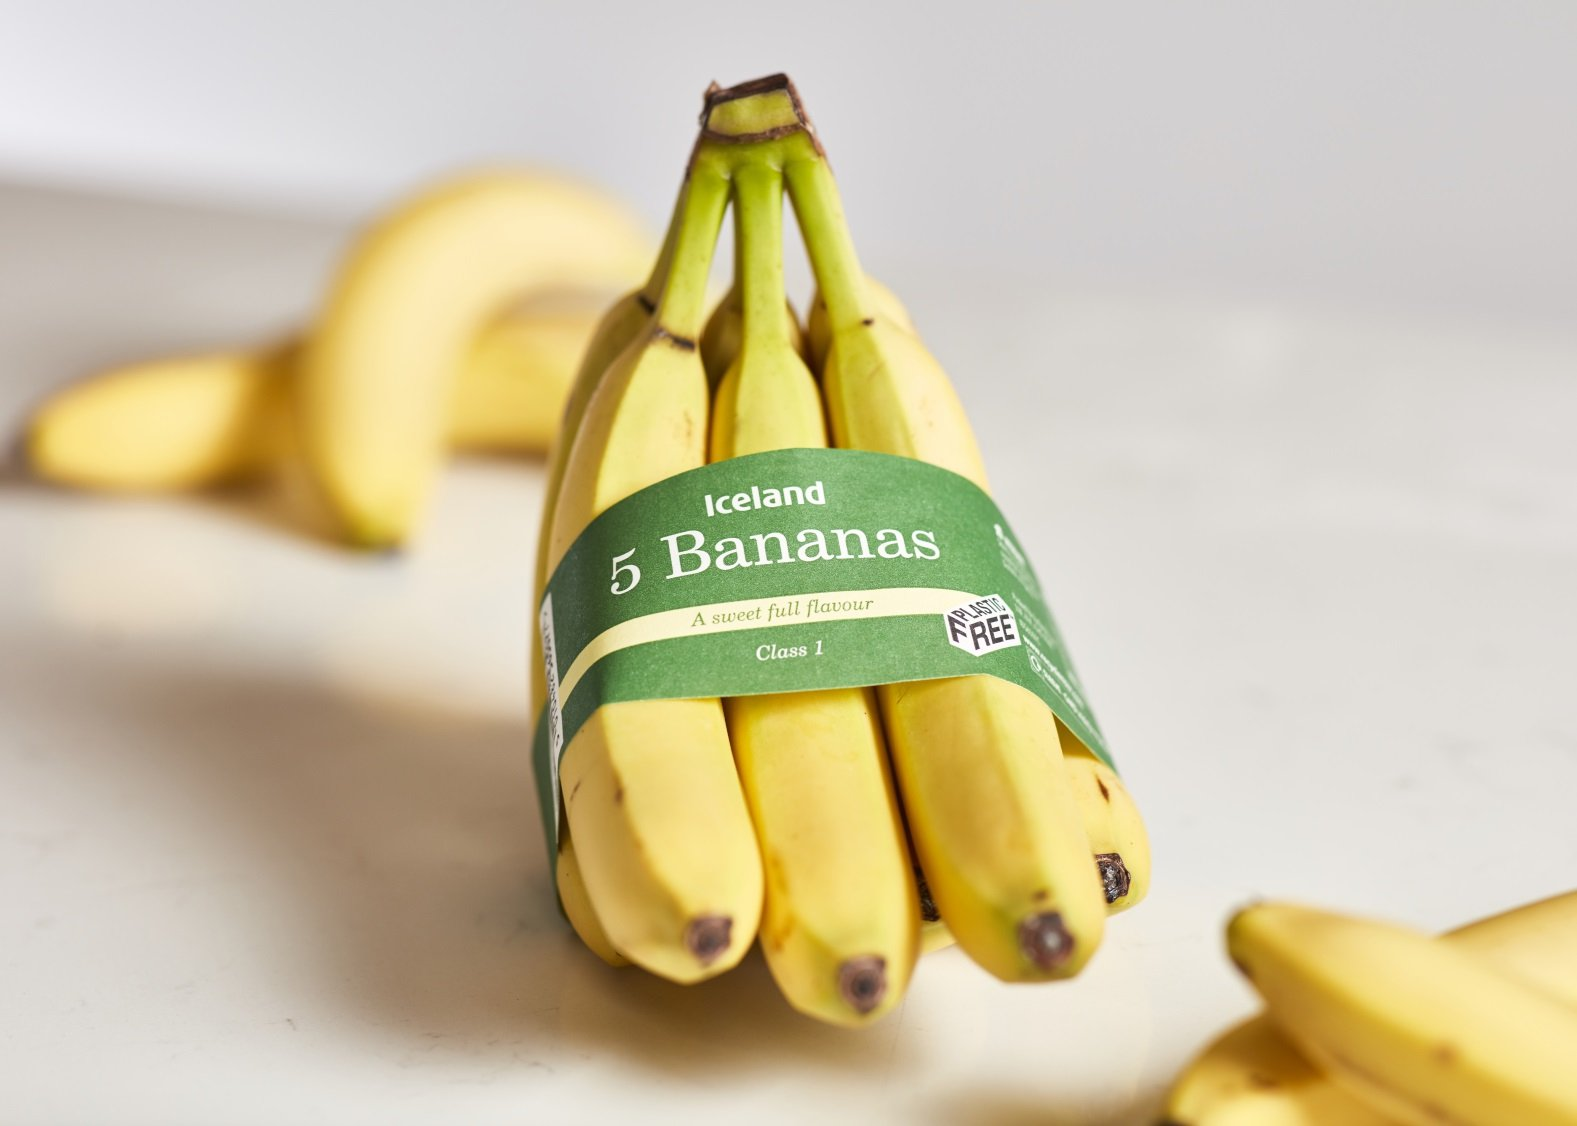 EMBARGOED TO 0001 WEDNESDAY SEPTEMBER 12 Iceland undated handout photo of their pre-packaged bananas which are being sold in a recycled paper band in a move it says will soon be saving 10 million plastic bags a year. PRESS ASSOCIATION Photo. Issue date: Wednesday September 12, 2018. The new packaging has launched in three Iceland stores as an initial trial and will extend to a further 120 stores later this week, before a national rollout by the end of the year. See PA story CONSUMER Bananas. Photo credit should read: Iceland/PA Wire NOTE TO EDITORS: This handout photo may only be used in for editorial reporting purposes for the contemporaneous illustration of events, things or the people in the image or facts mentioned in the caption. Reuse of the picture may require further permission from the copyright holder.